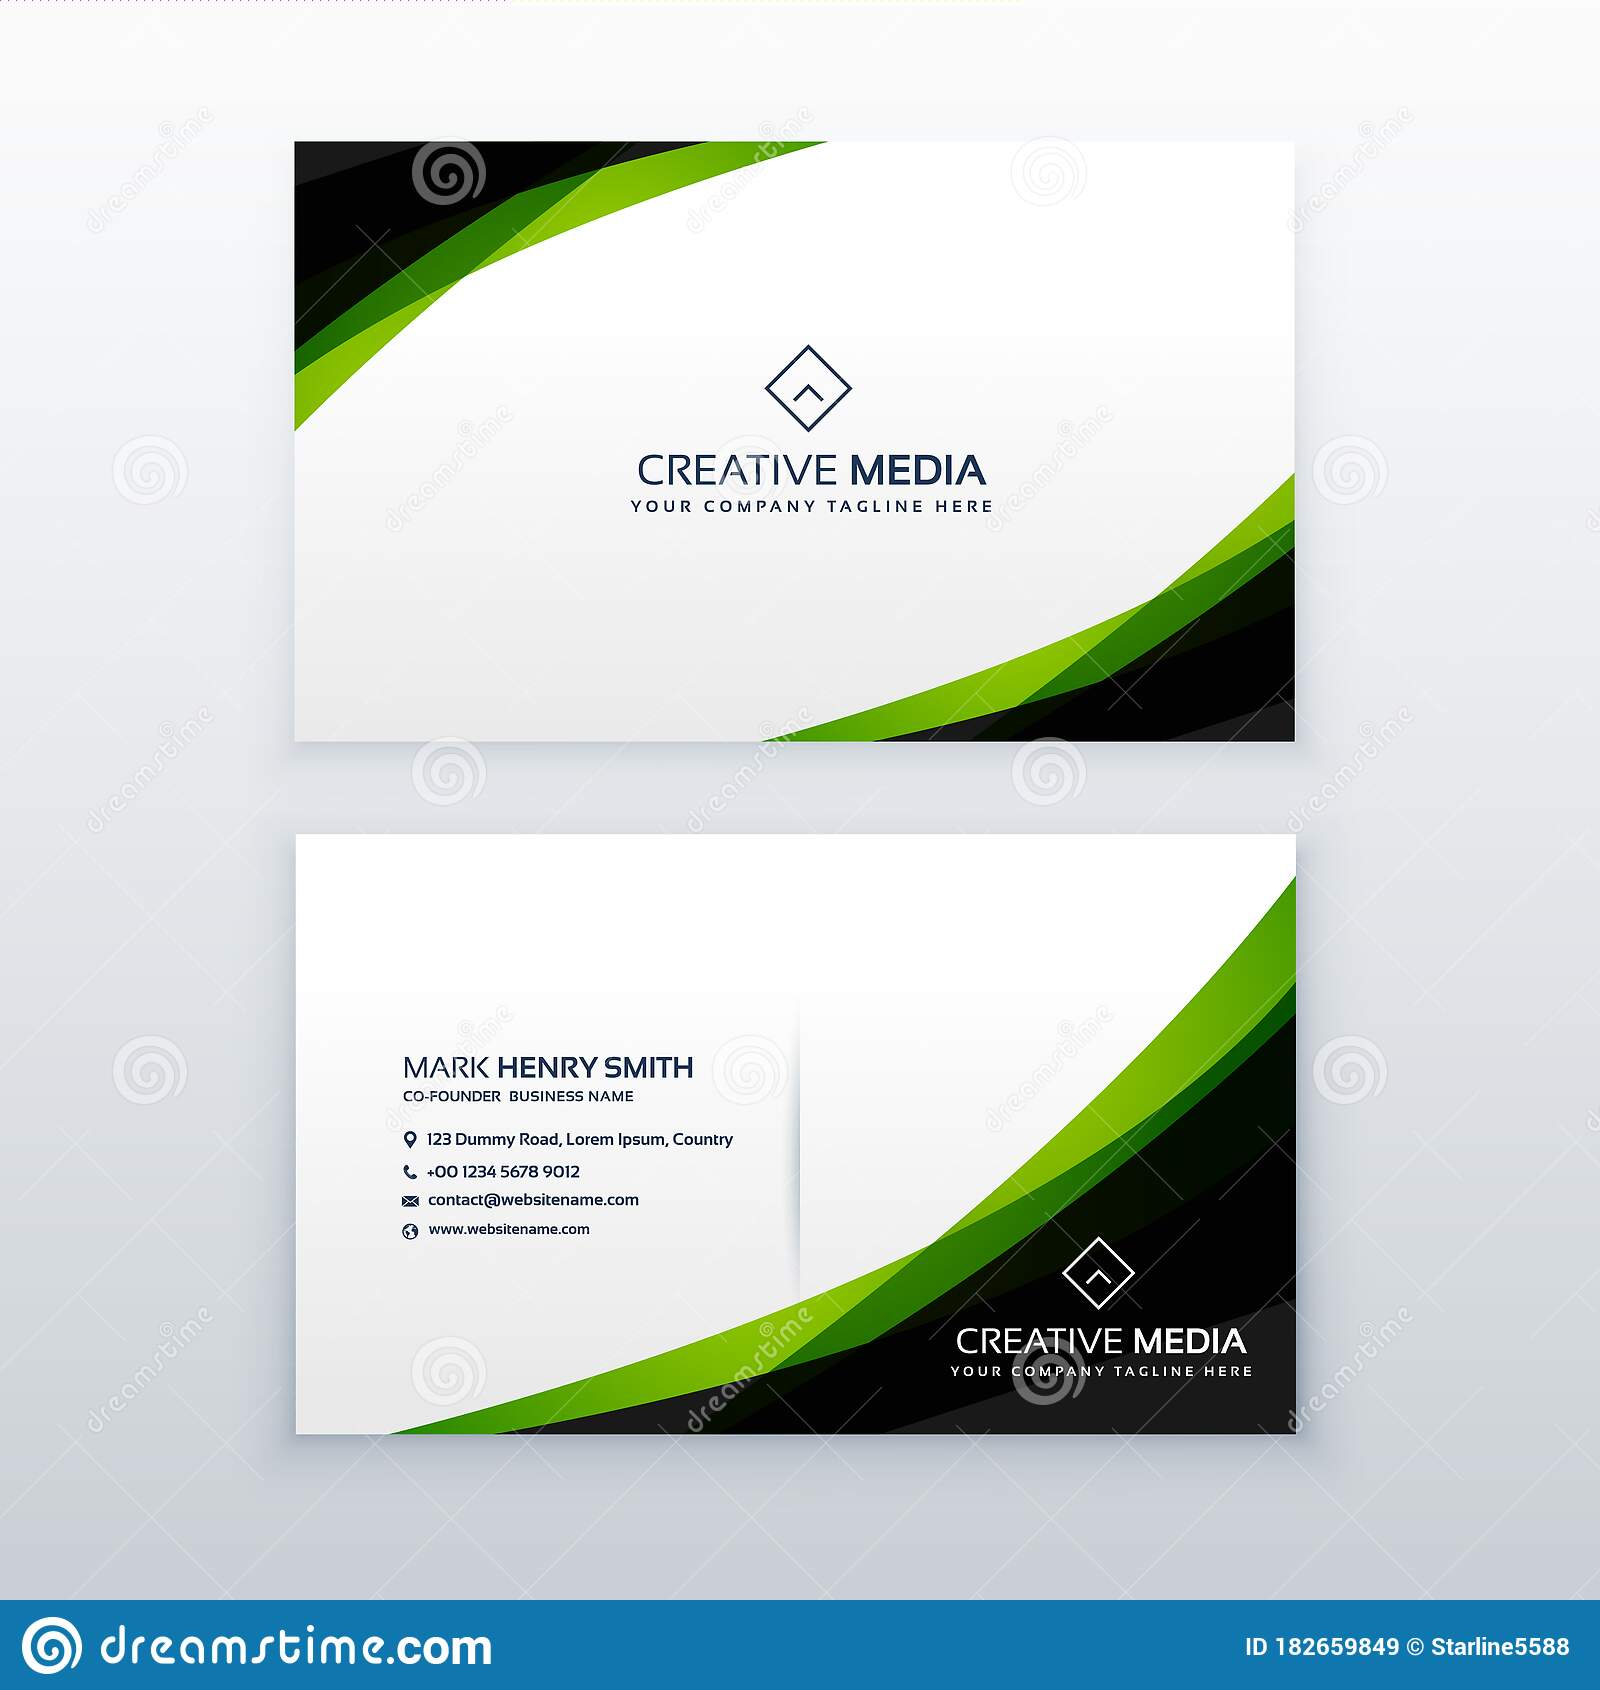 Business Card Design Template from thumbs.dreamstime.com